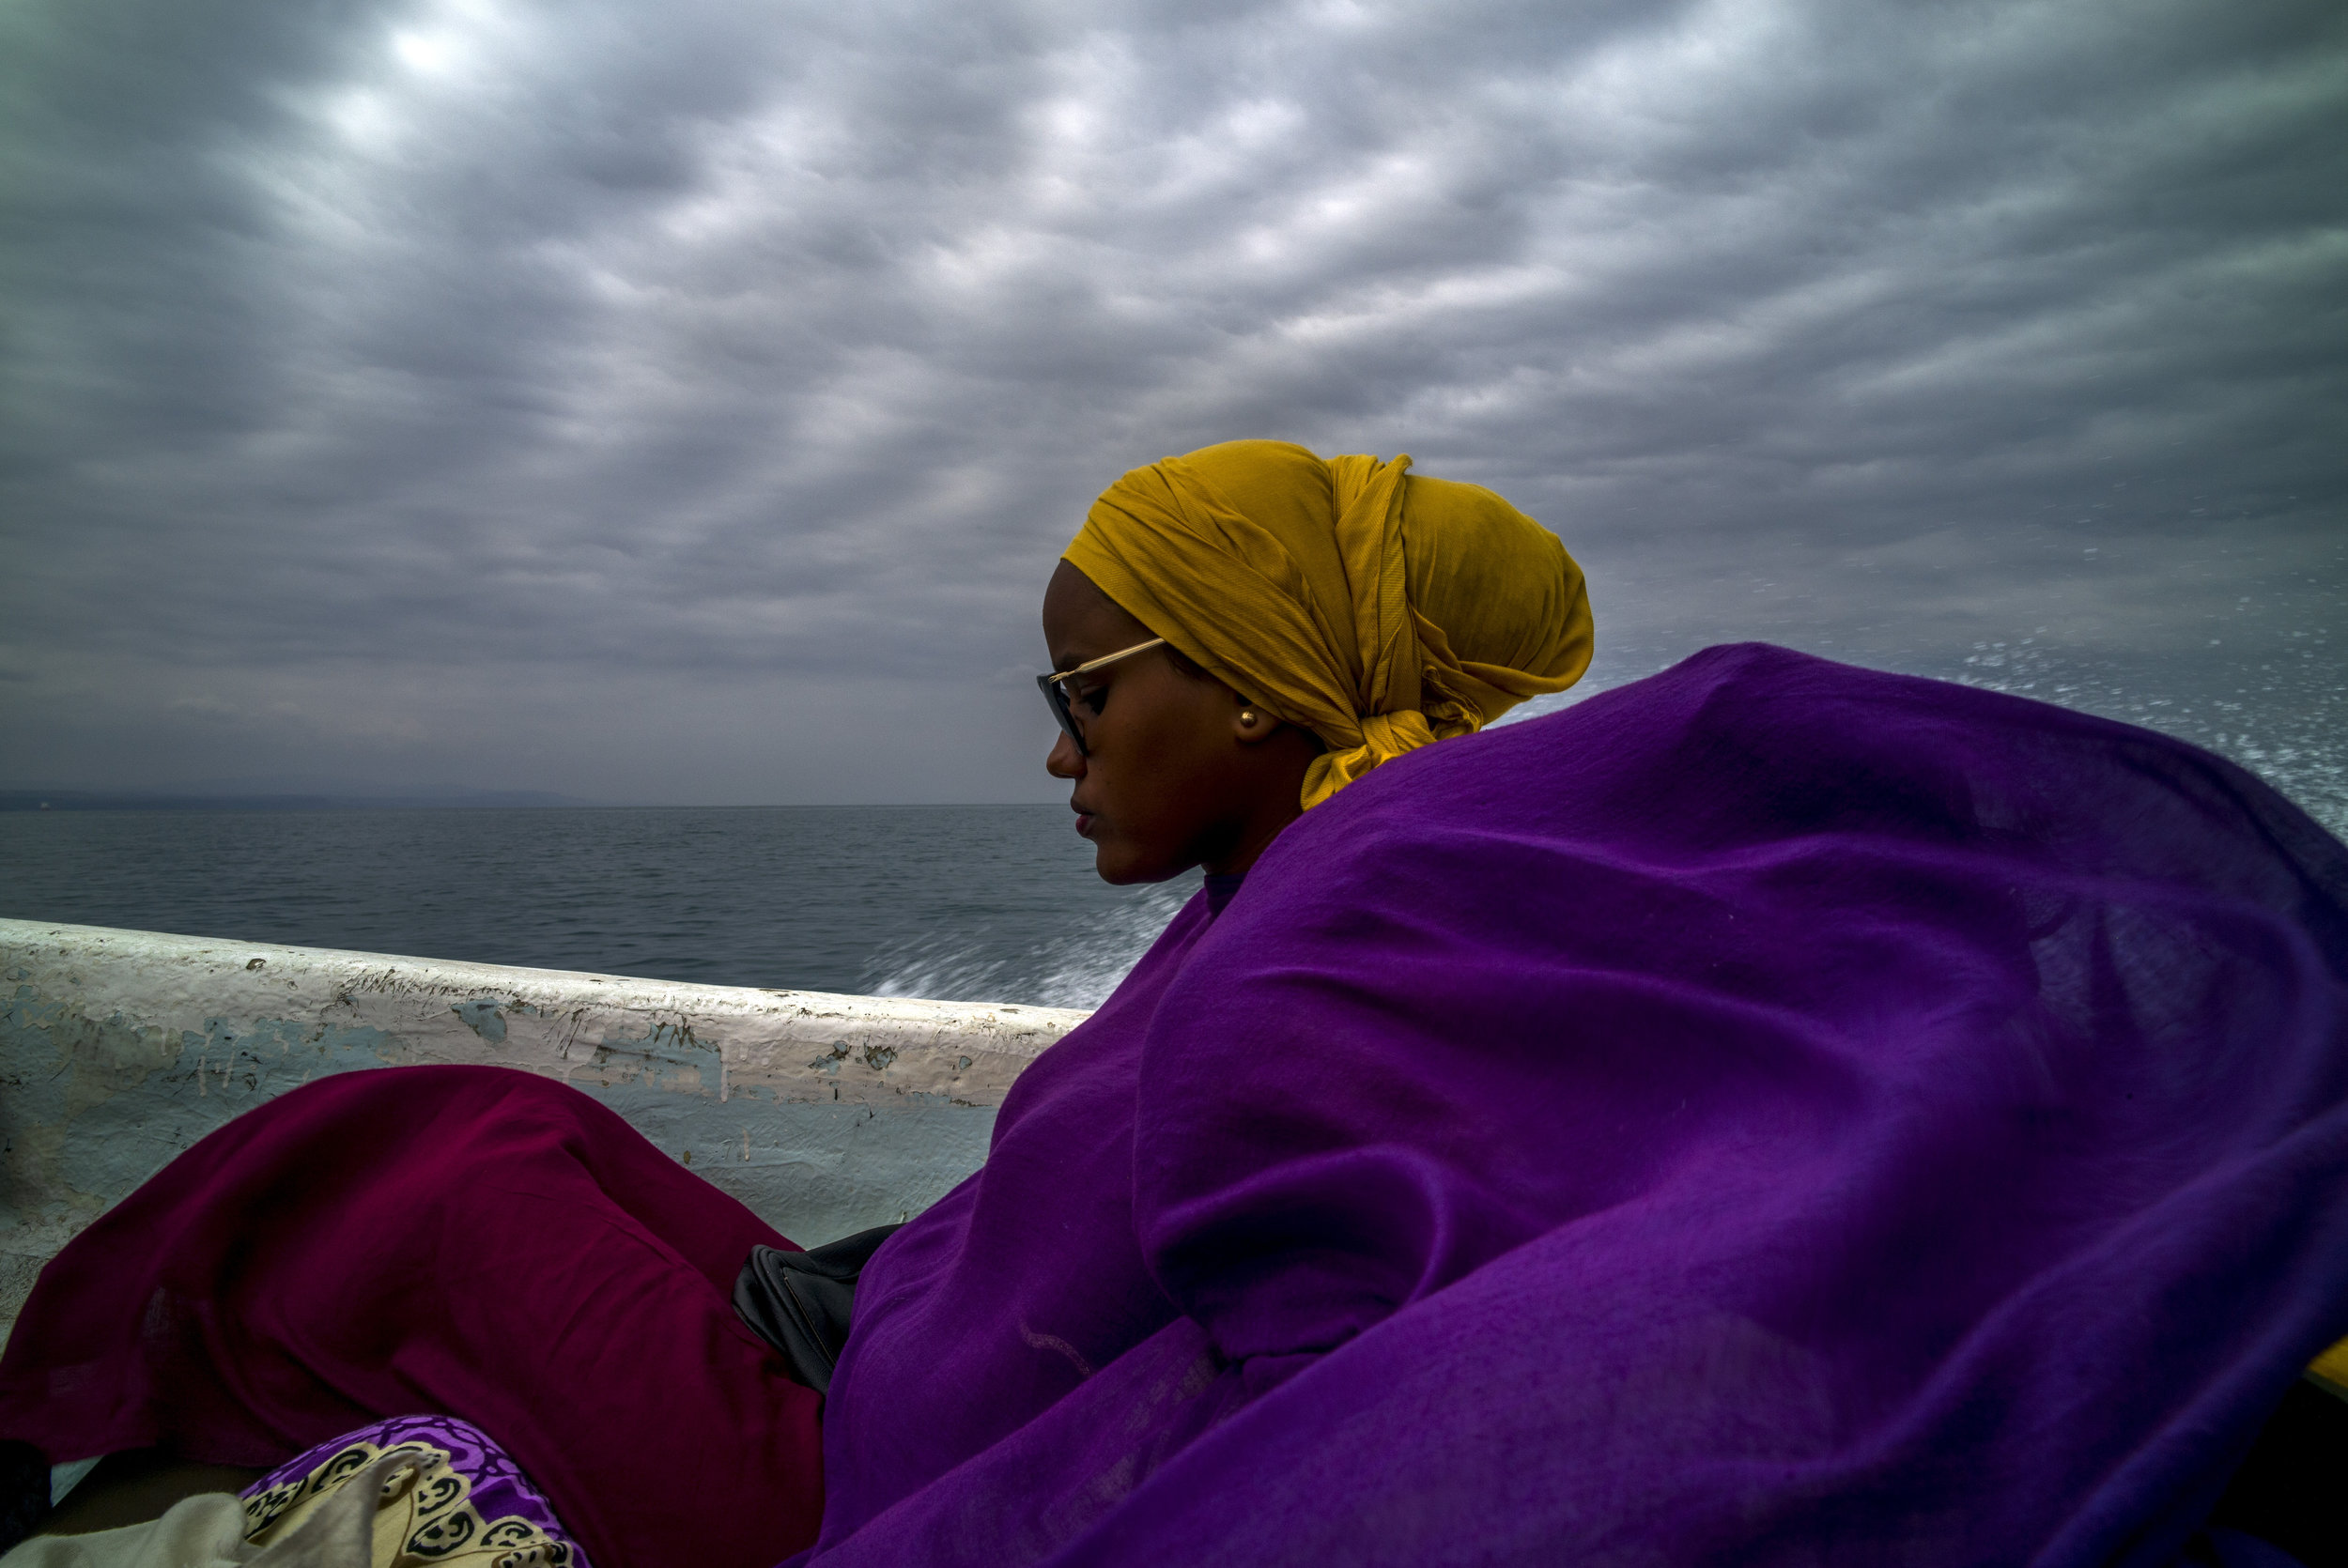 OBOCK, DJIBOUTI - DECEMBER 2018  Crossing the sea from Obock, two women in wrapped in colourful scarves travel in a small, fibreglass speedboat used to transport the narcotic khat. Chewed on a daily basis by much of the male population surrounding the Gulf of Aden?s shores, trade in the lucrative khat business often goes hand in hand with other forms of smuggling.